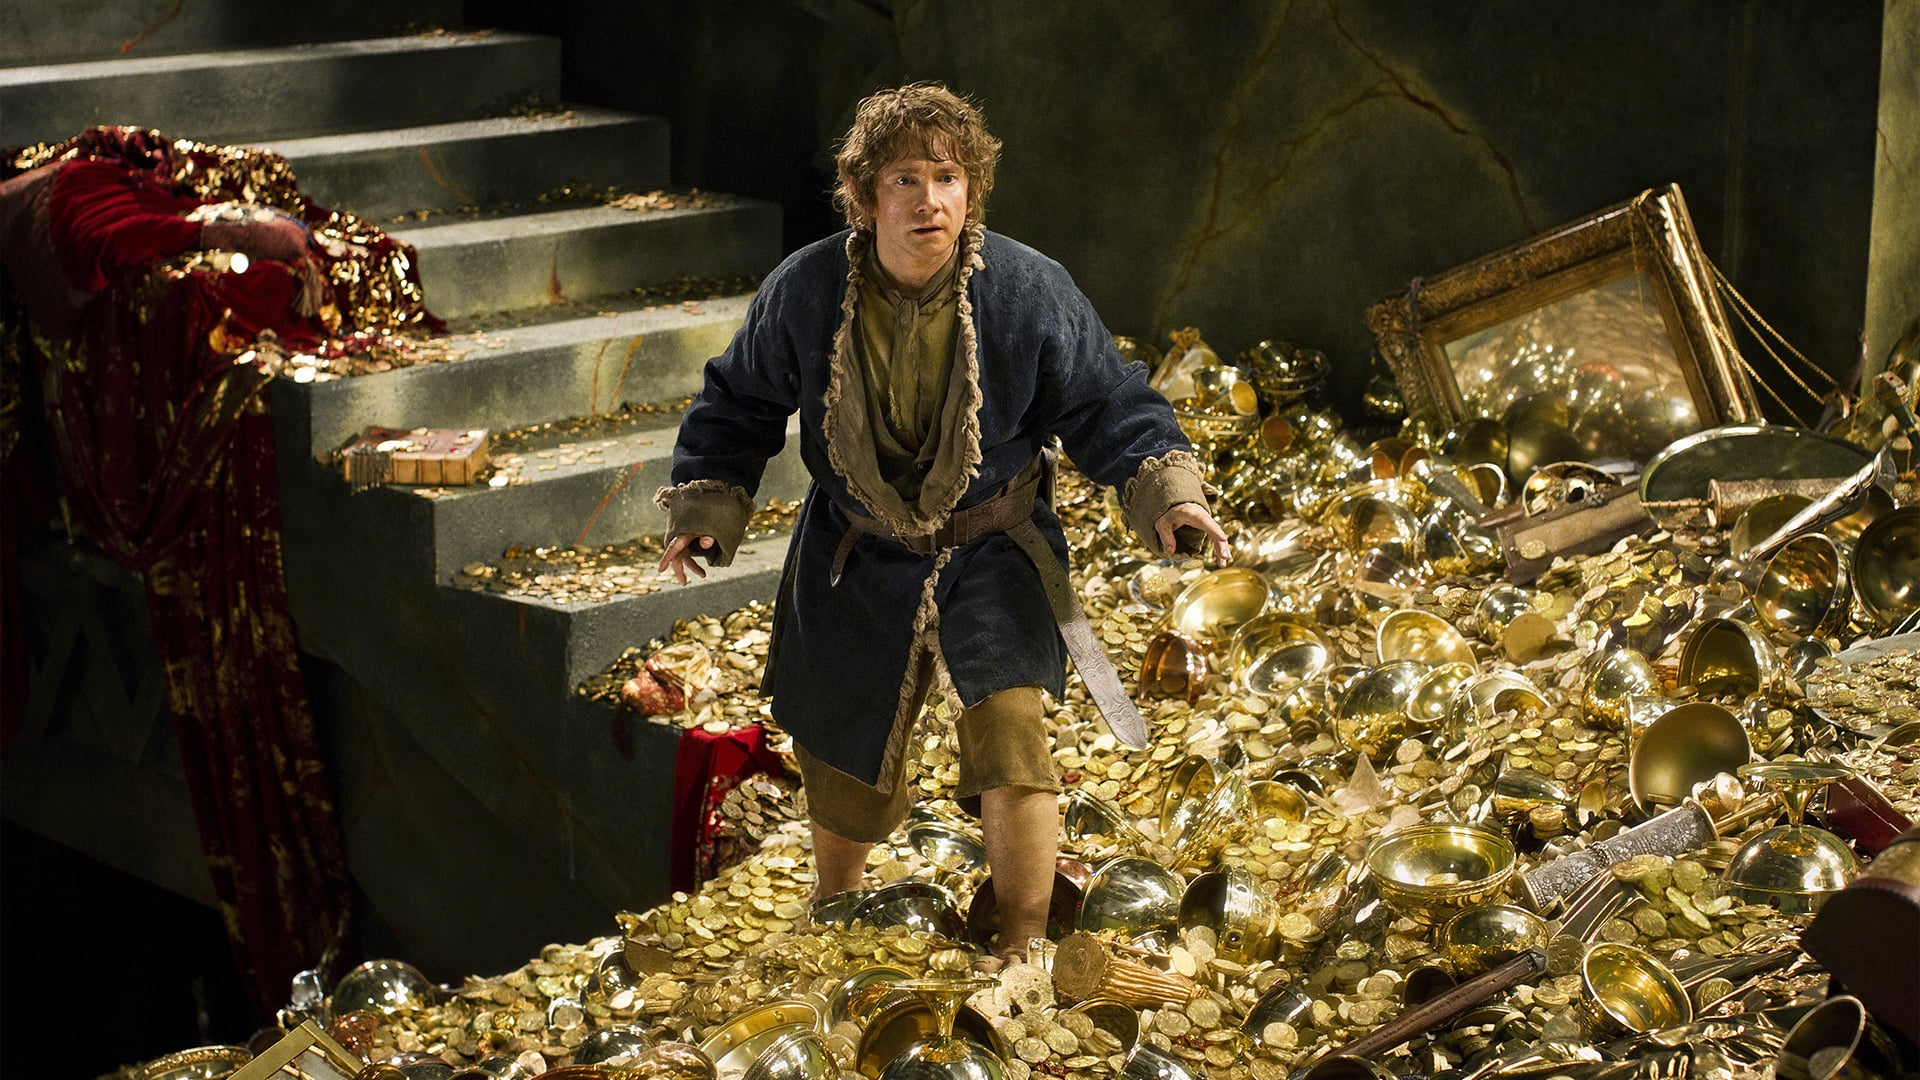 The Hobbit: The Desolation of Smaug backdrop